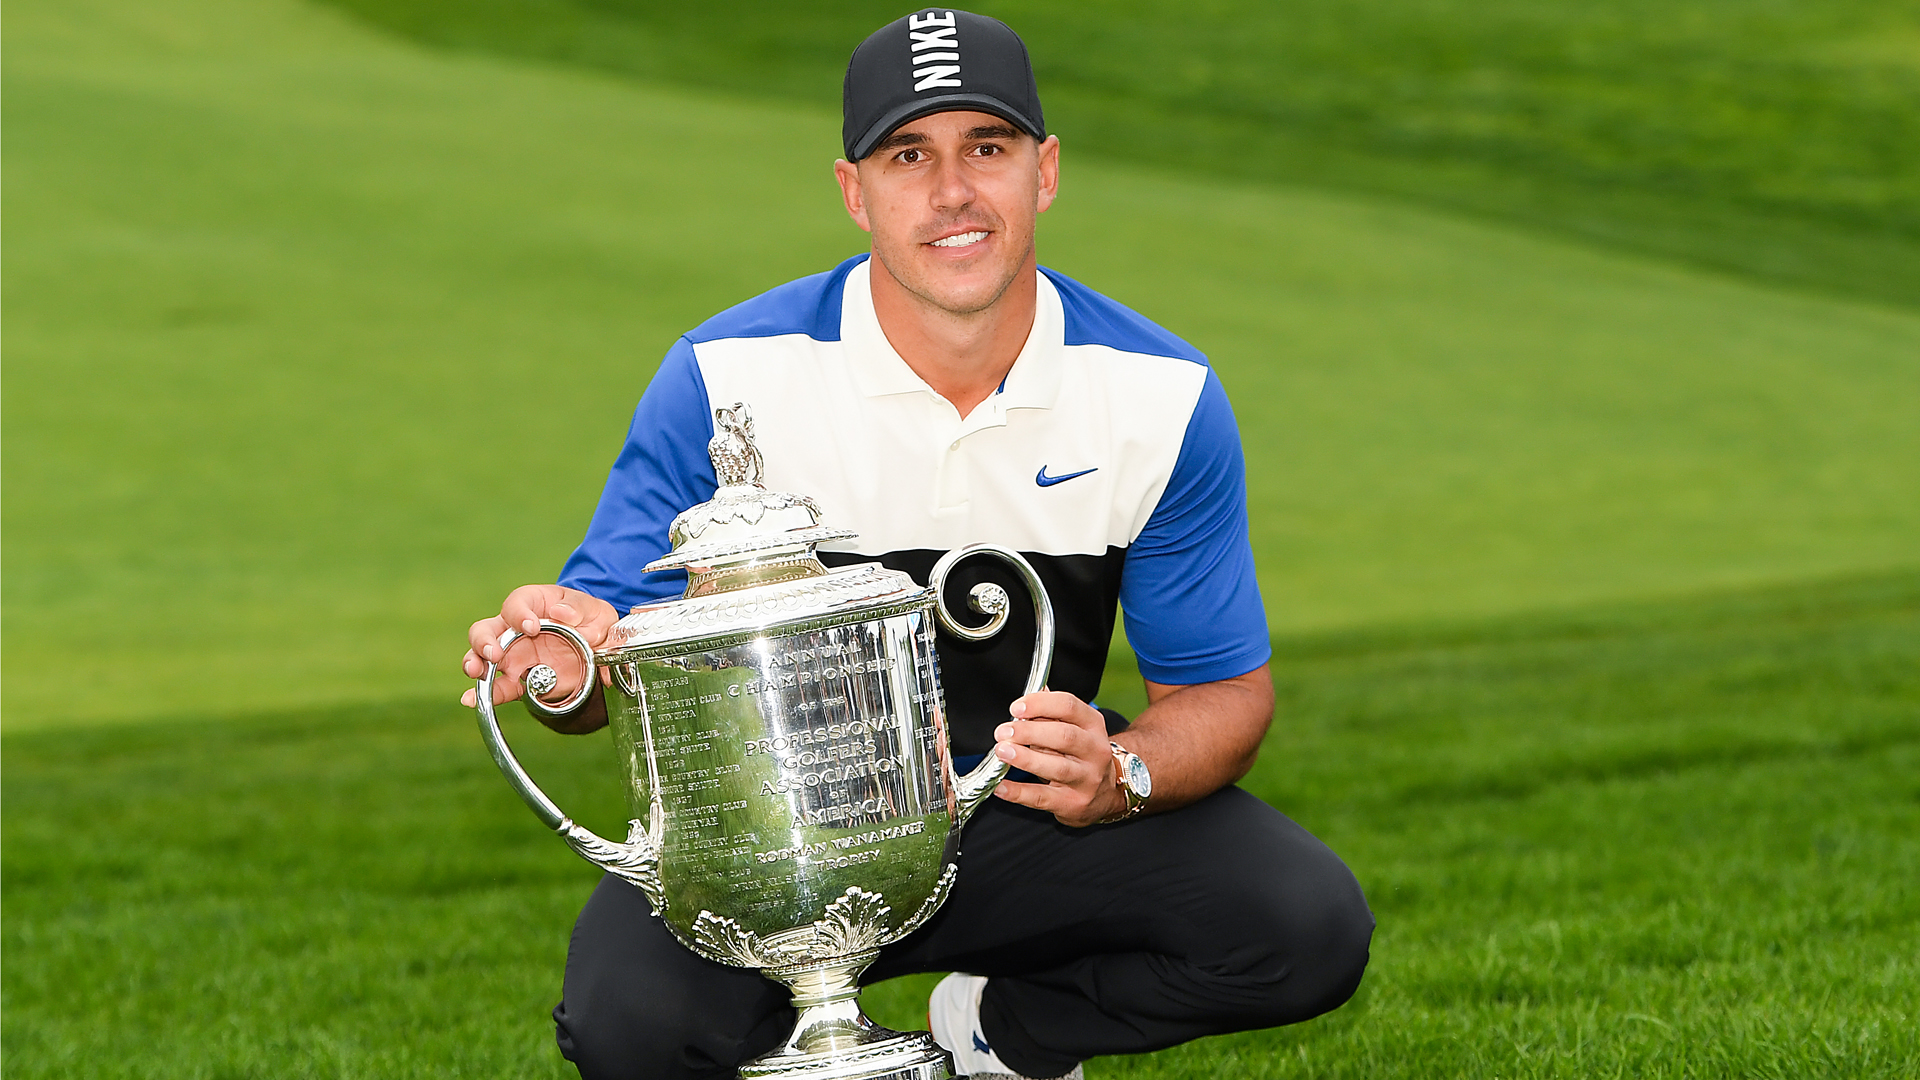 US PGA Championship: Brooks Koepka in sight of rare major three-peat